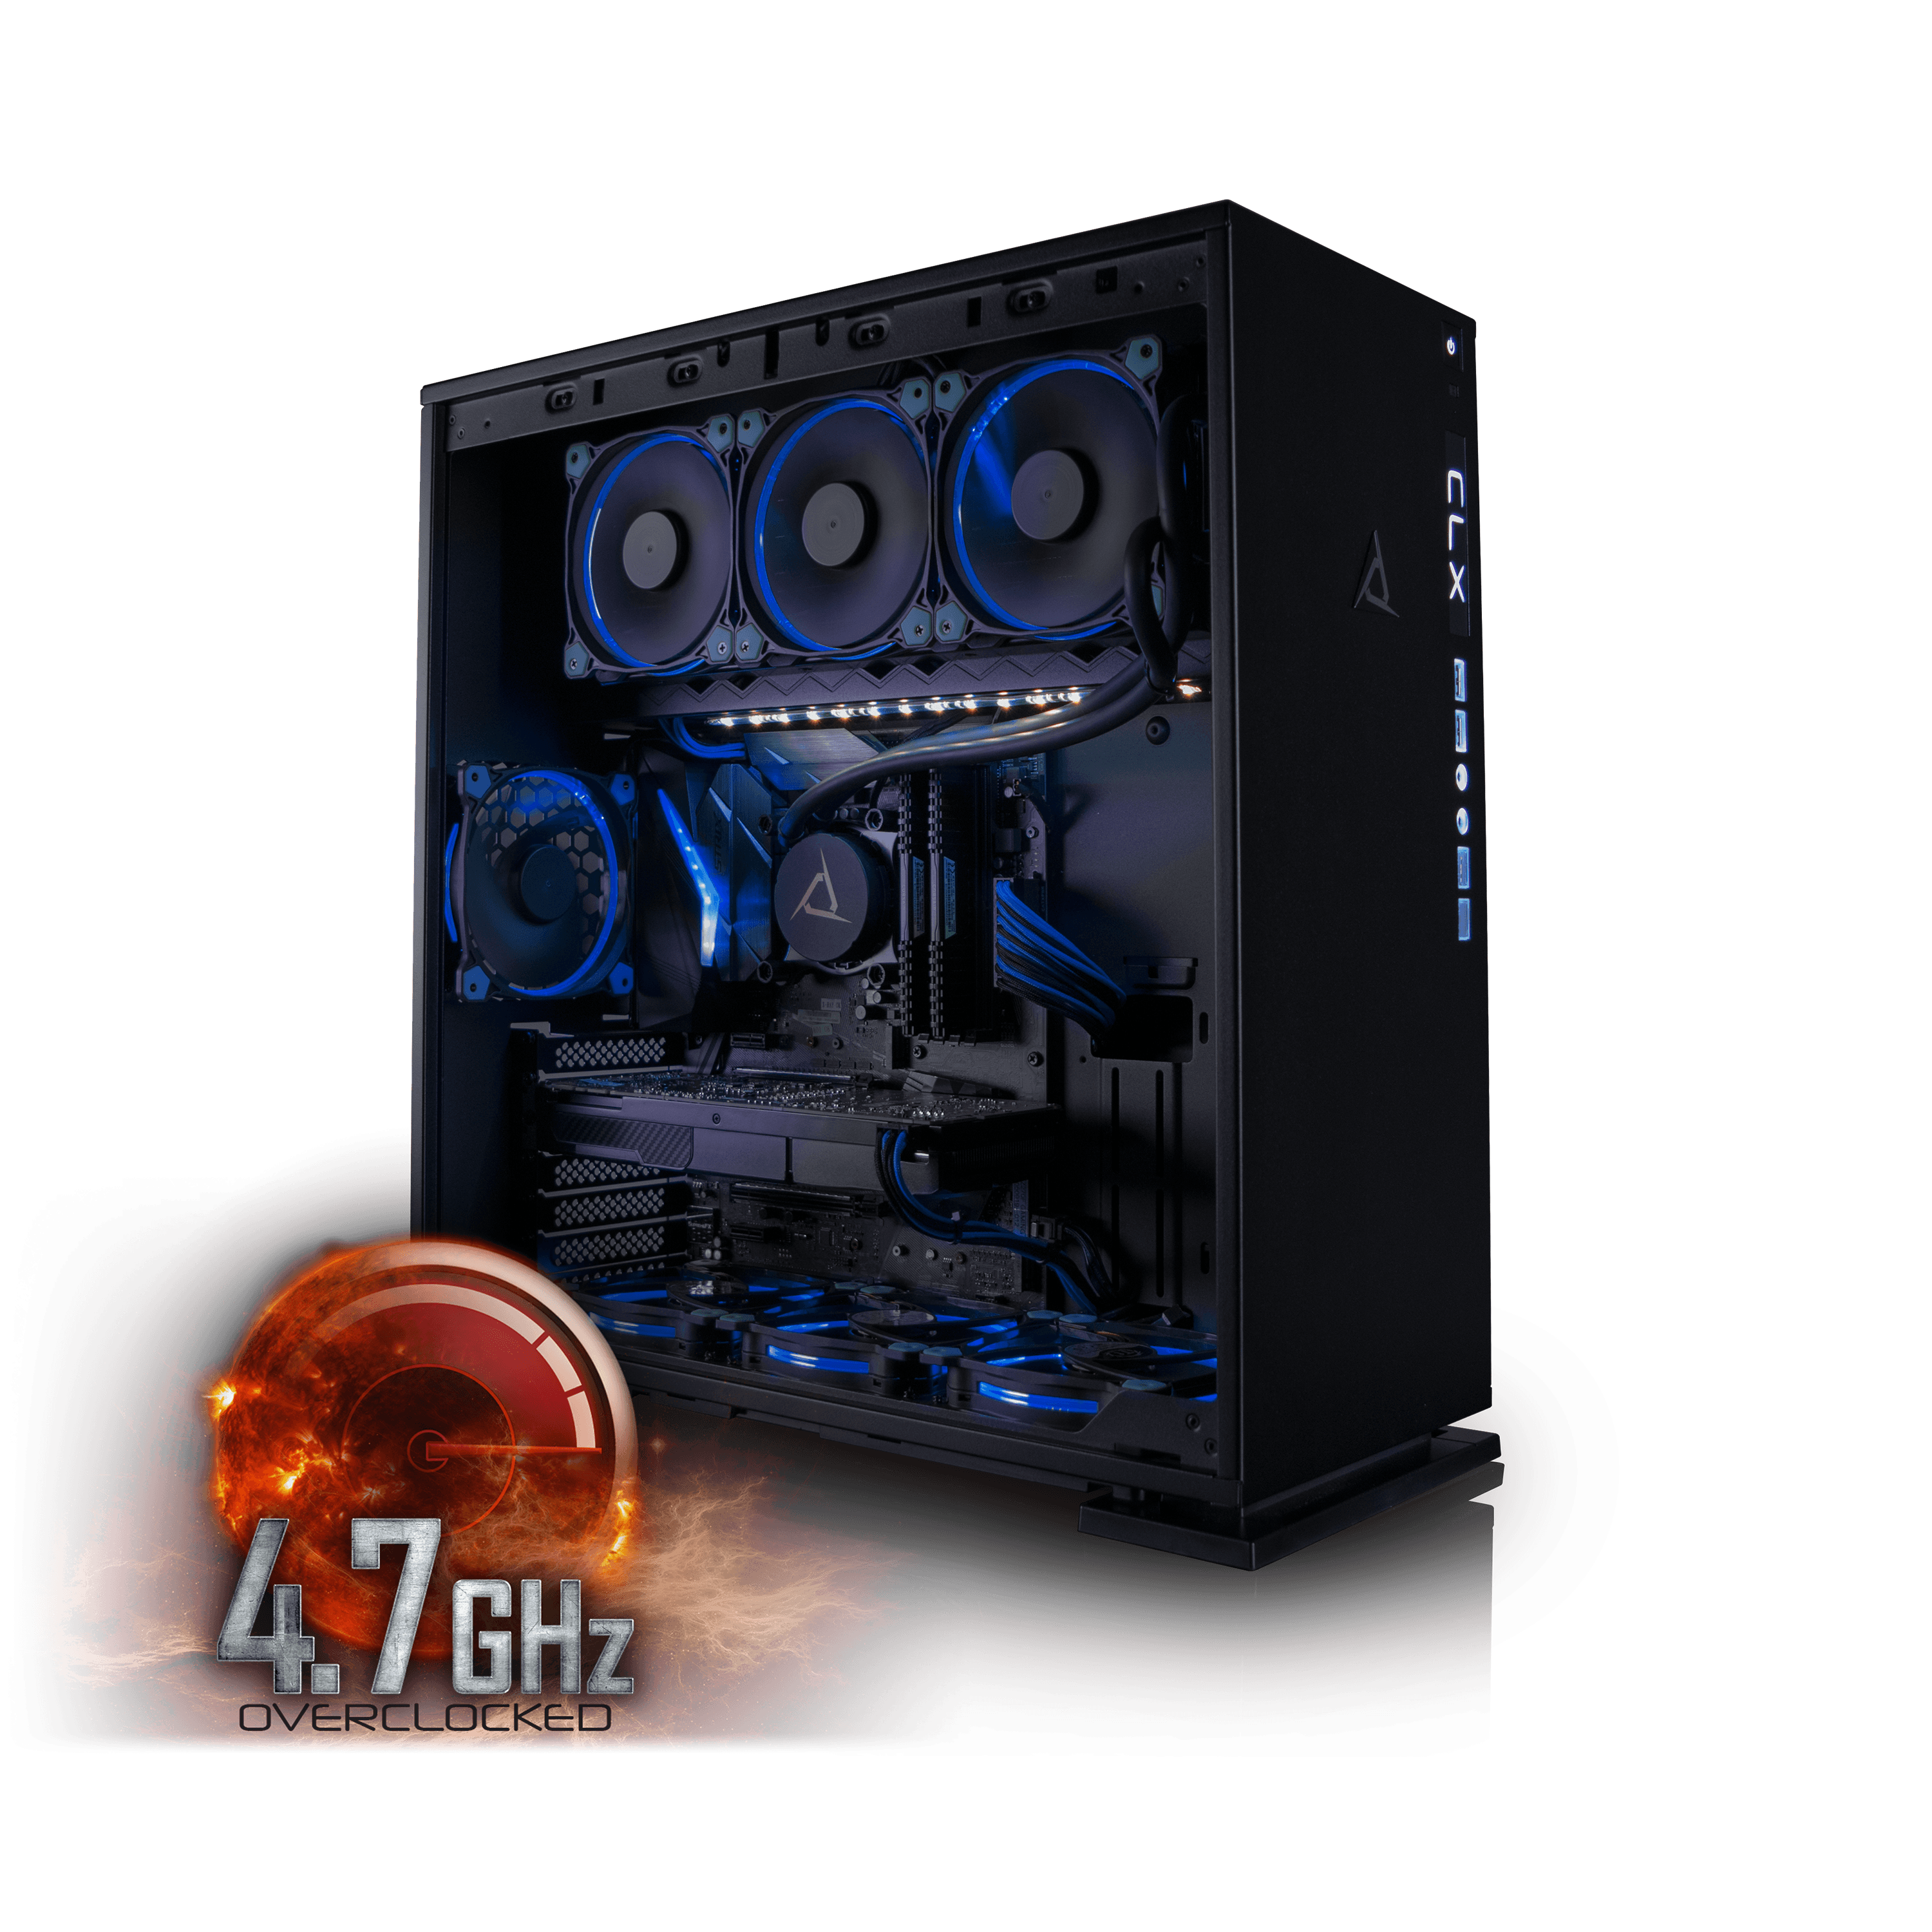 CybertronPC CLX Set High Performance Gaming PC Tripple-Liquid Cooled Z270 Asus Motherboard Intel i7 7700K 4.7GHz(OC)... by CybertronPC